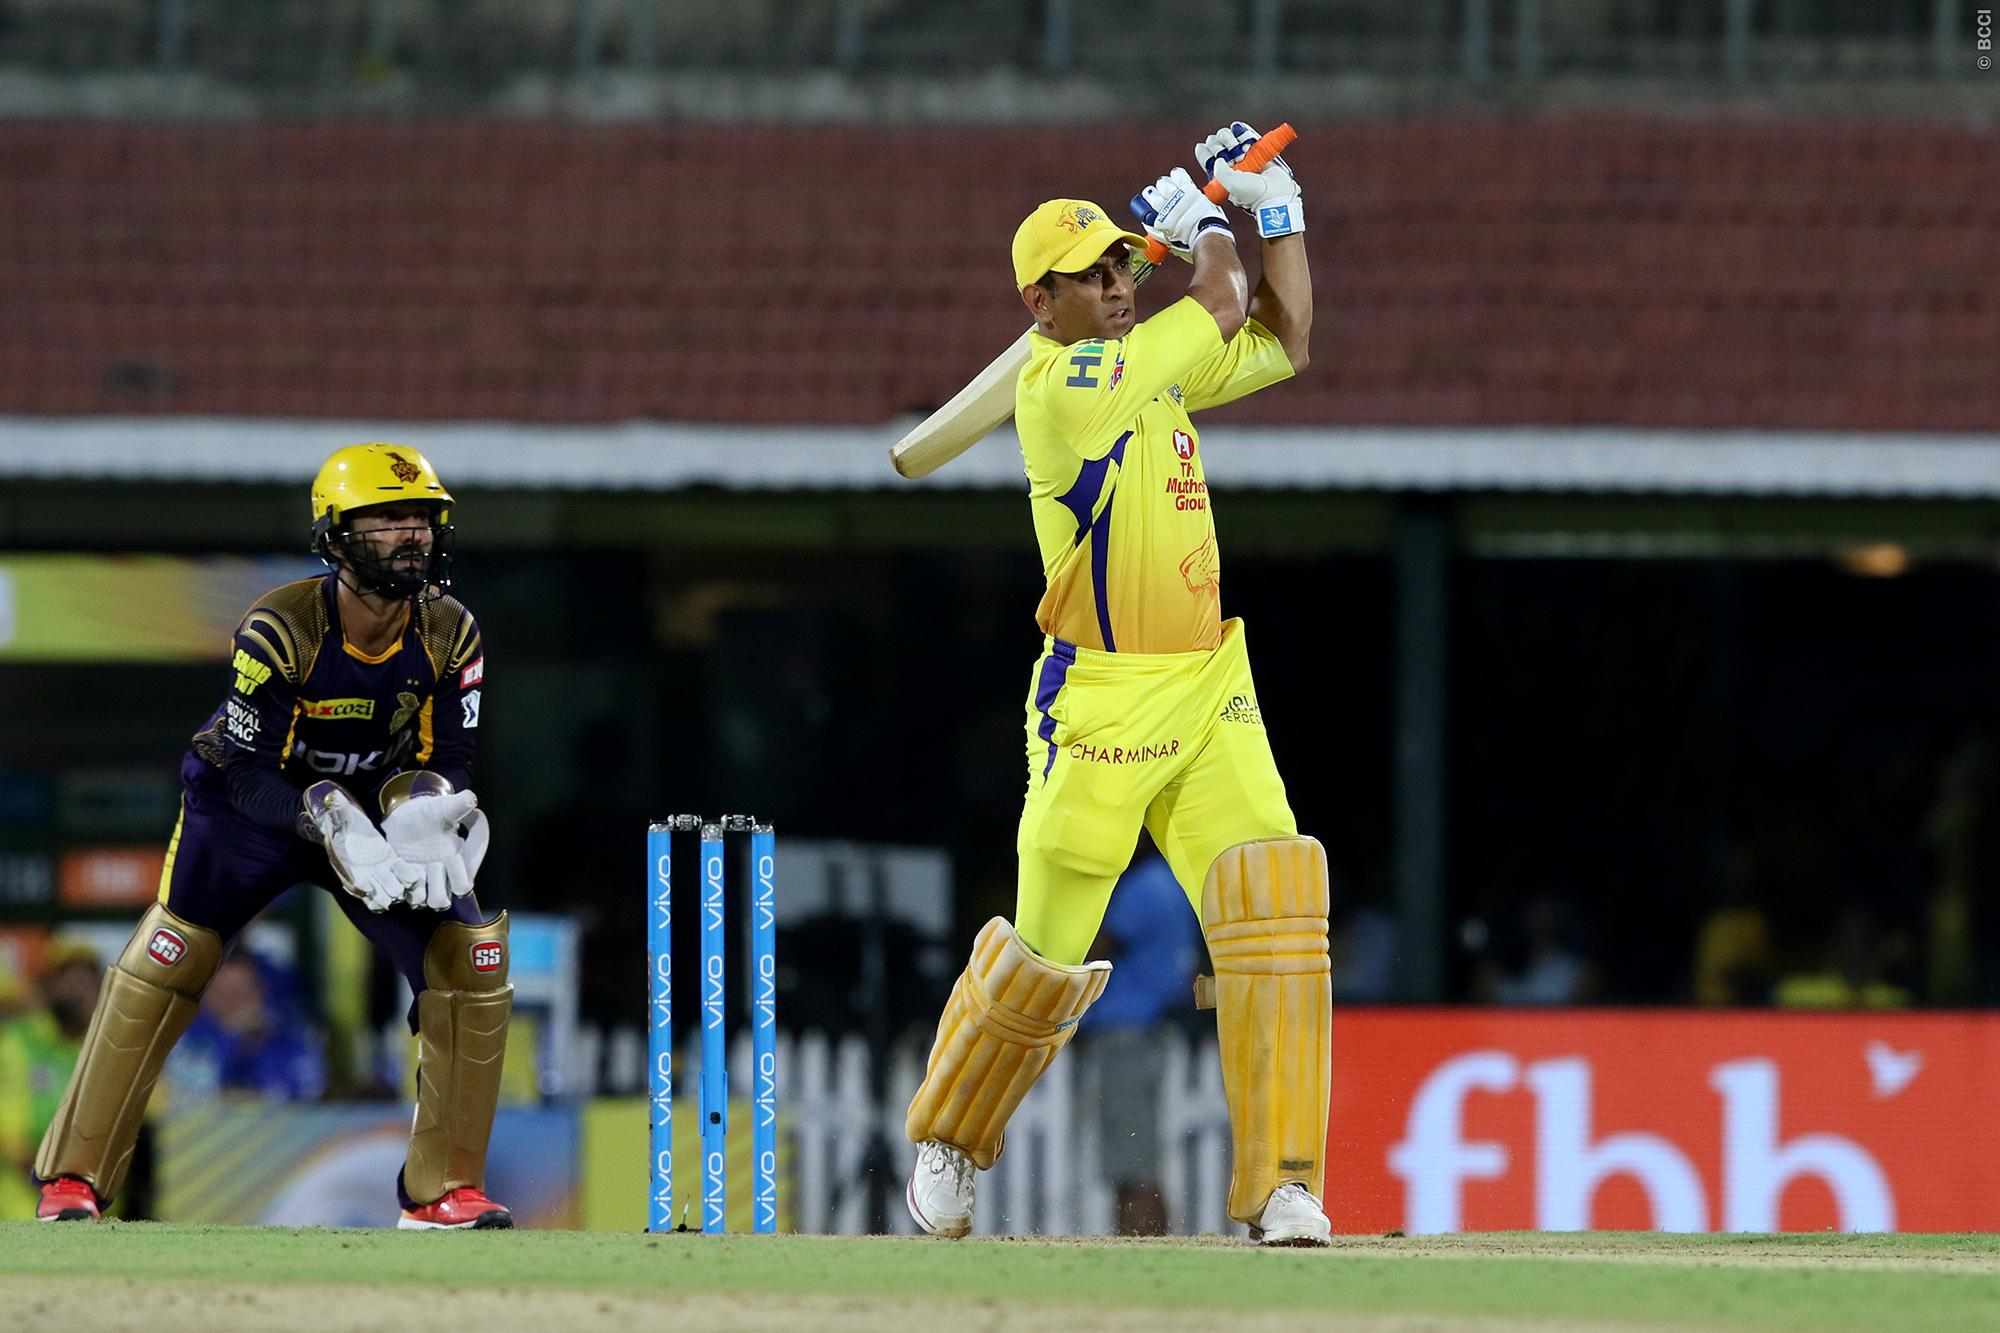 IPL 2018 RESULT: MS Dhoni's Army Wins it at Home Ground [Video Highlights]